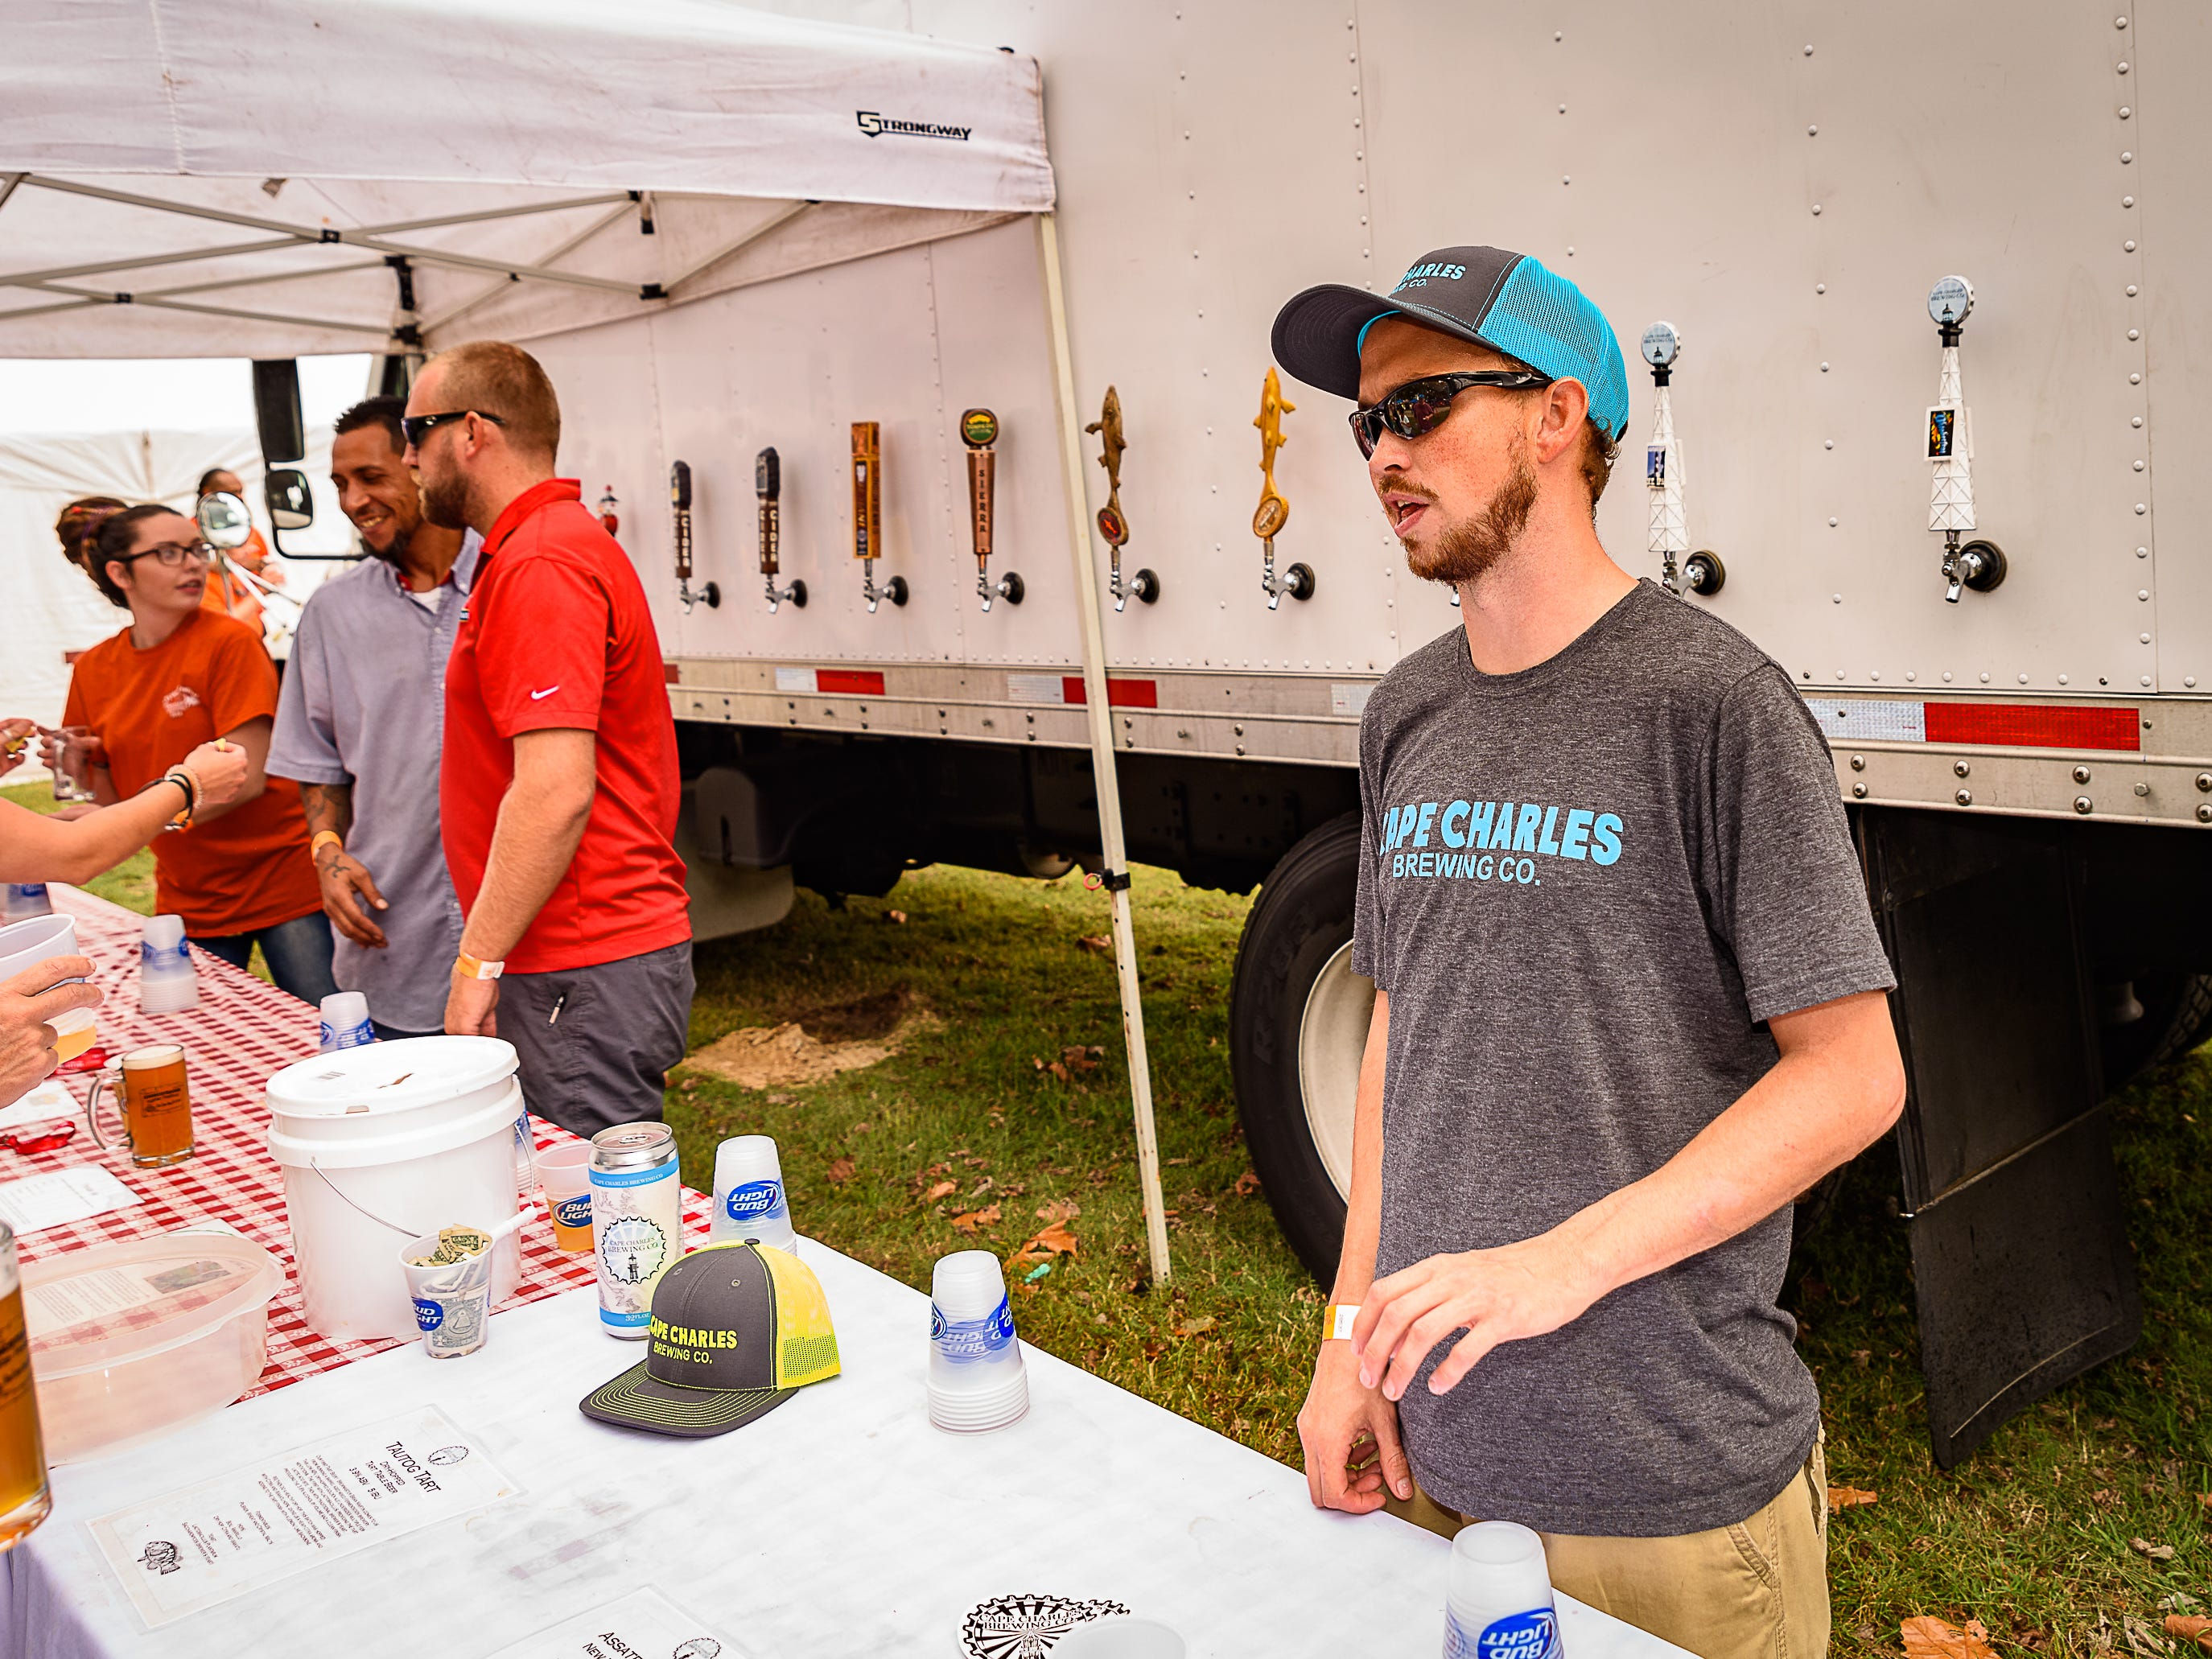 Cape Charles Brewing Company offered a selection of its beers at the Chincoteague festival.